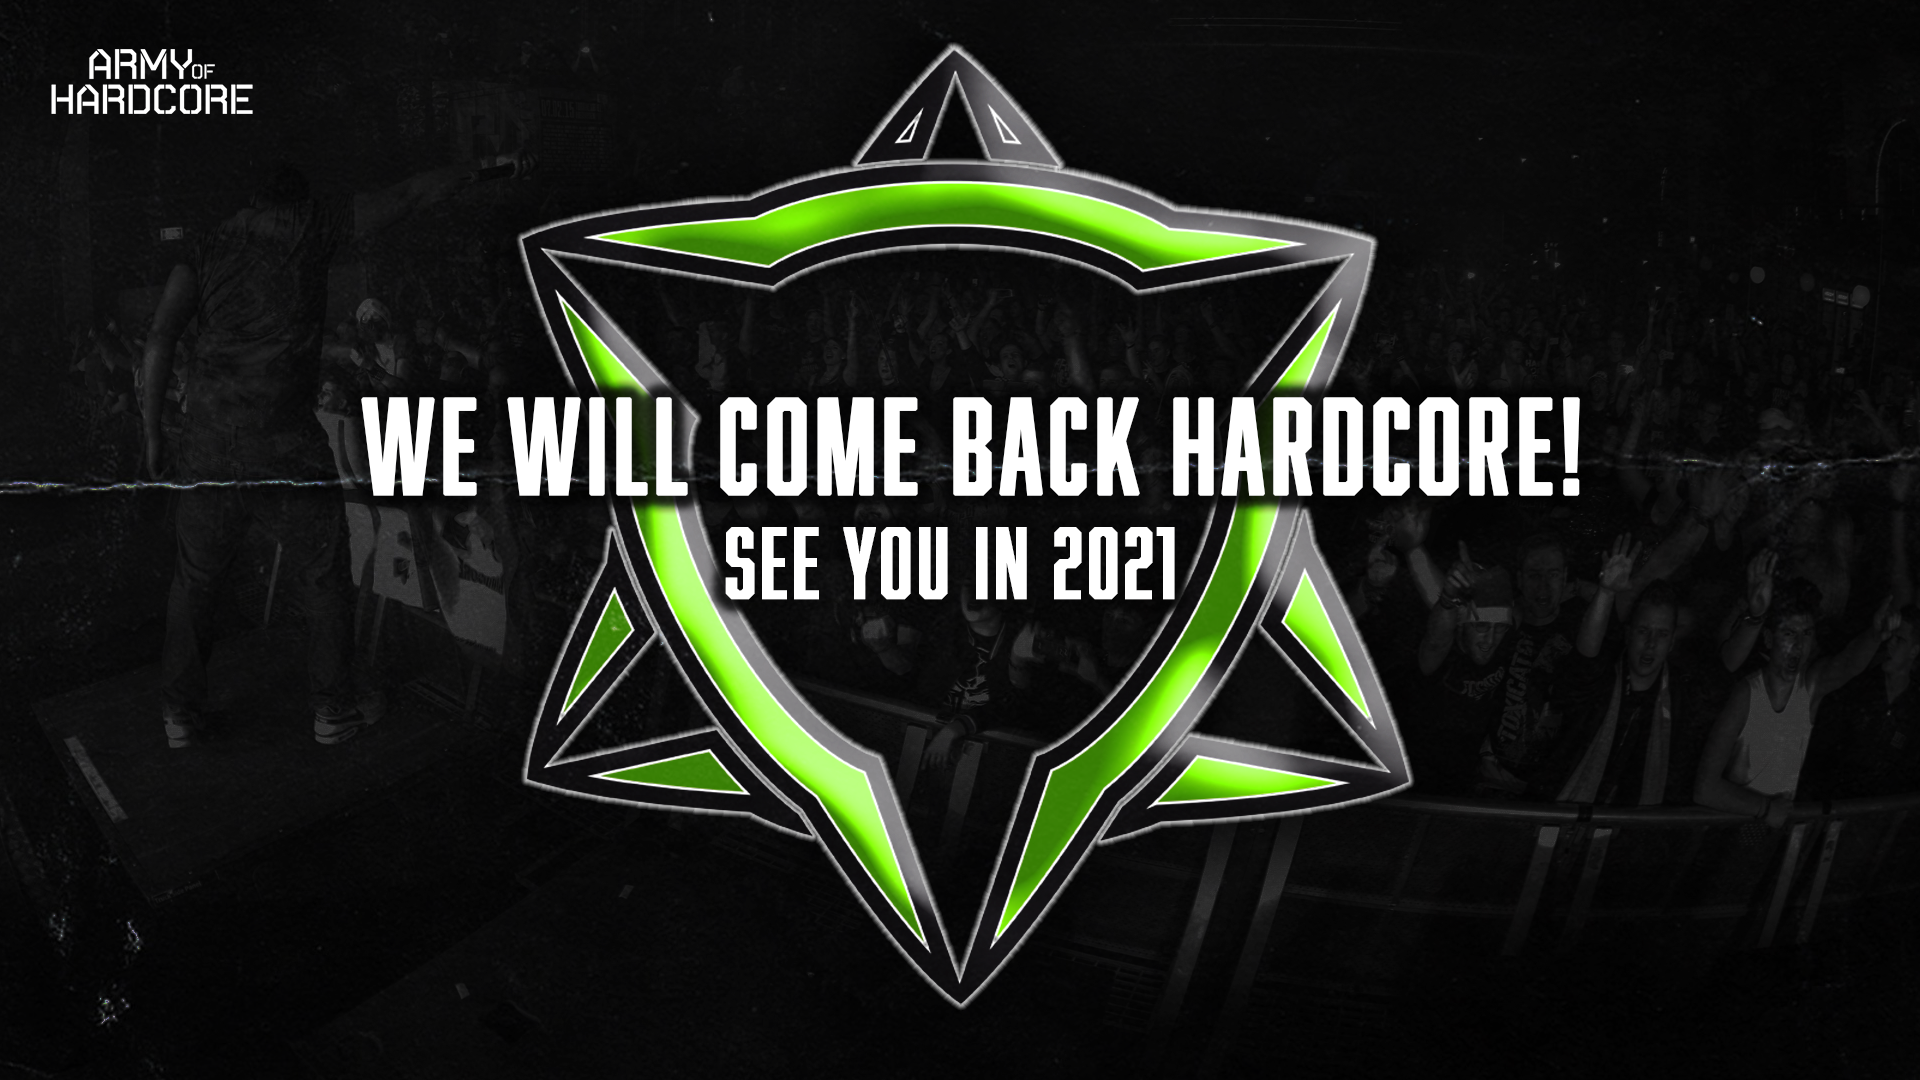 Army Of Hardcore 2021